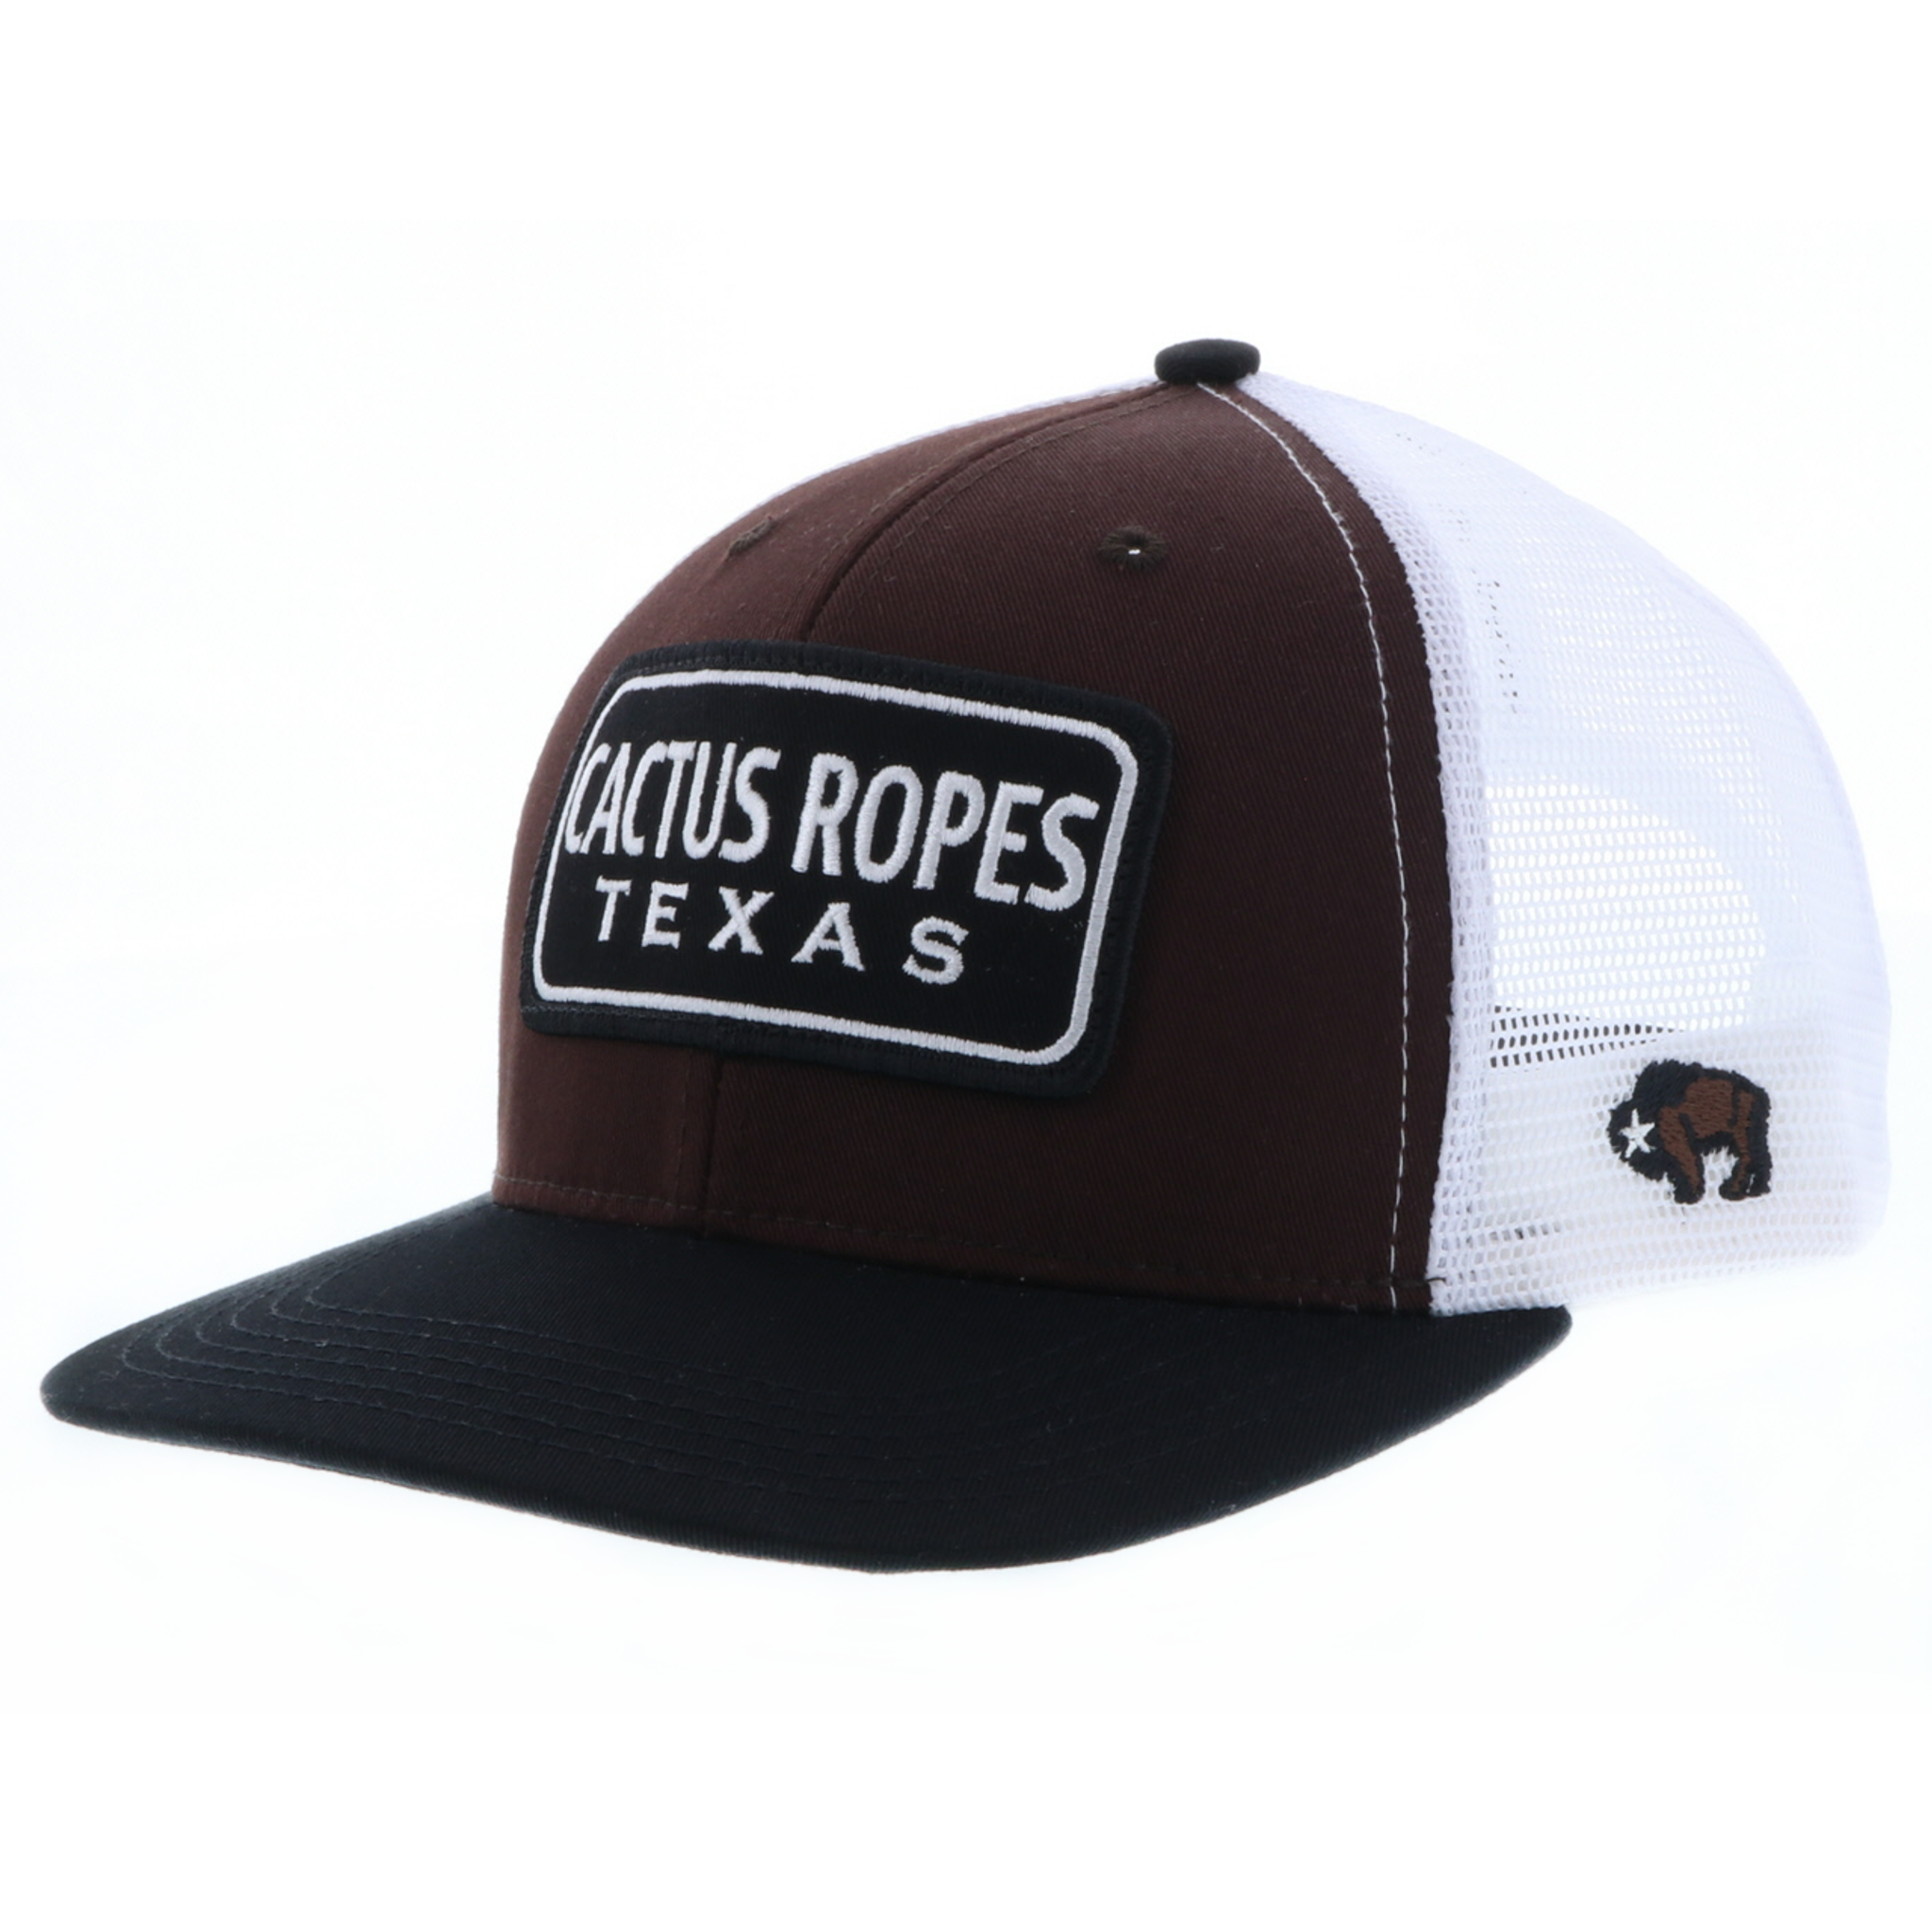 quality design 45da7 e2ead Men s Hooey Cap, Cactus Ropes, Brown and White Trucker - Chick Elms Grand  Entry Western Store and Rodeo Shop